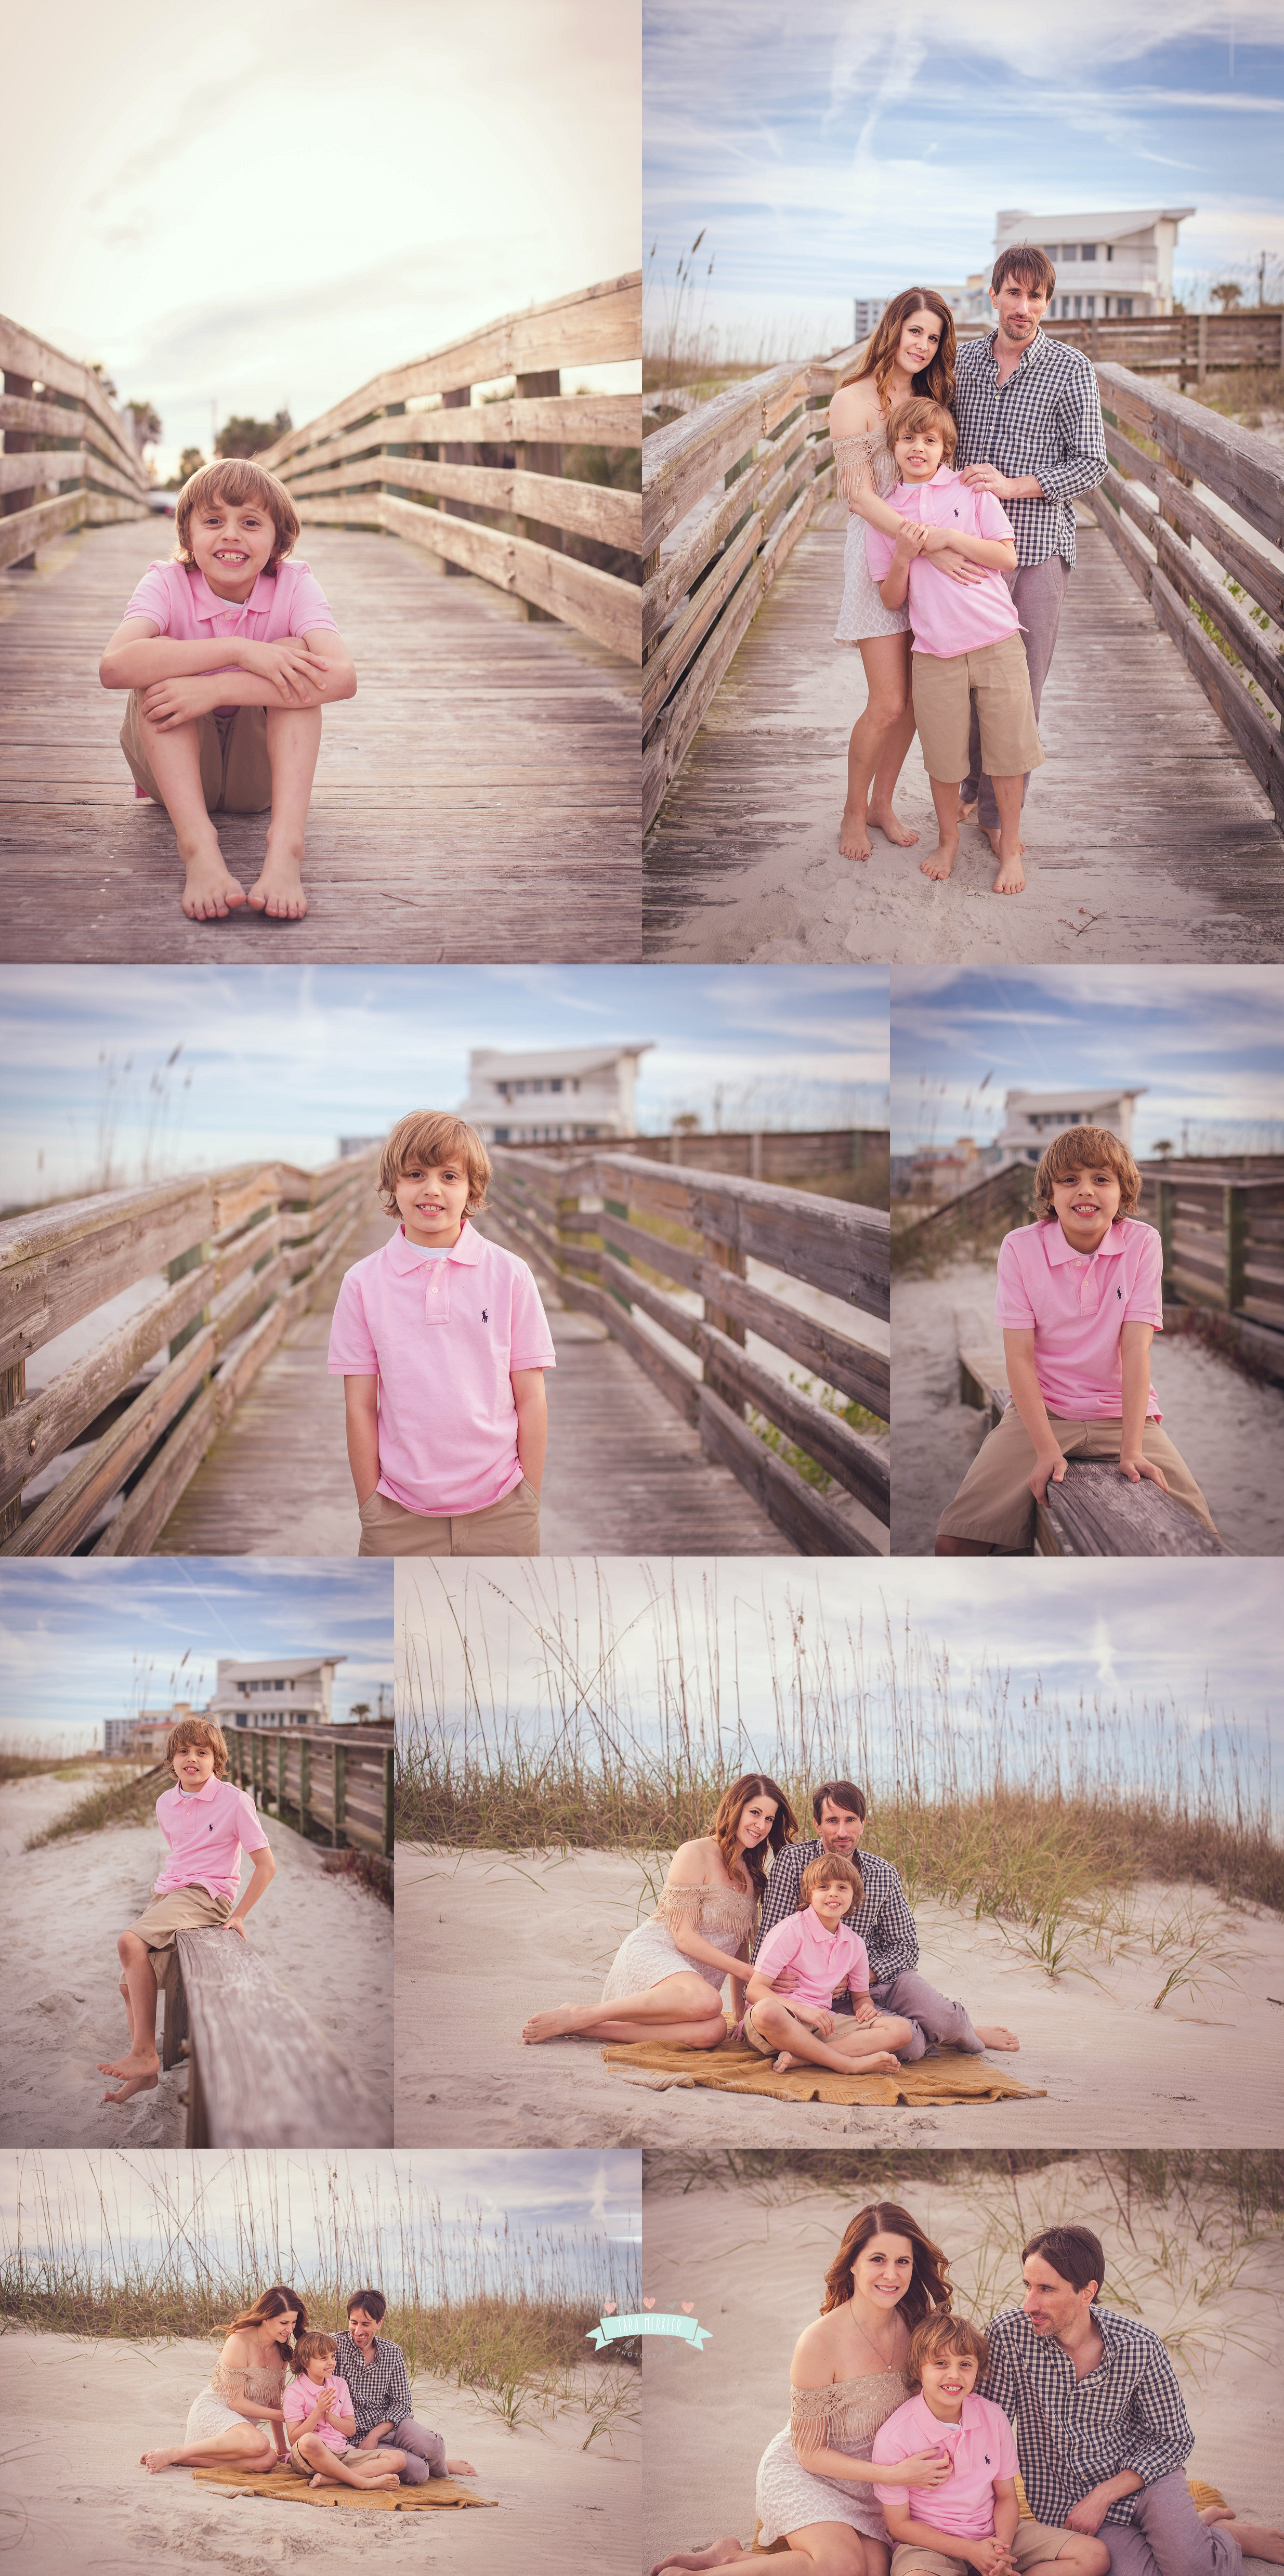 Ulman Family Beach Session in Central Florida Photographer Tara Merkler Photography New Smyrna Beach Photography_0002.jpg